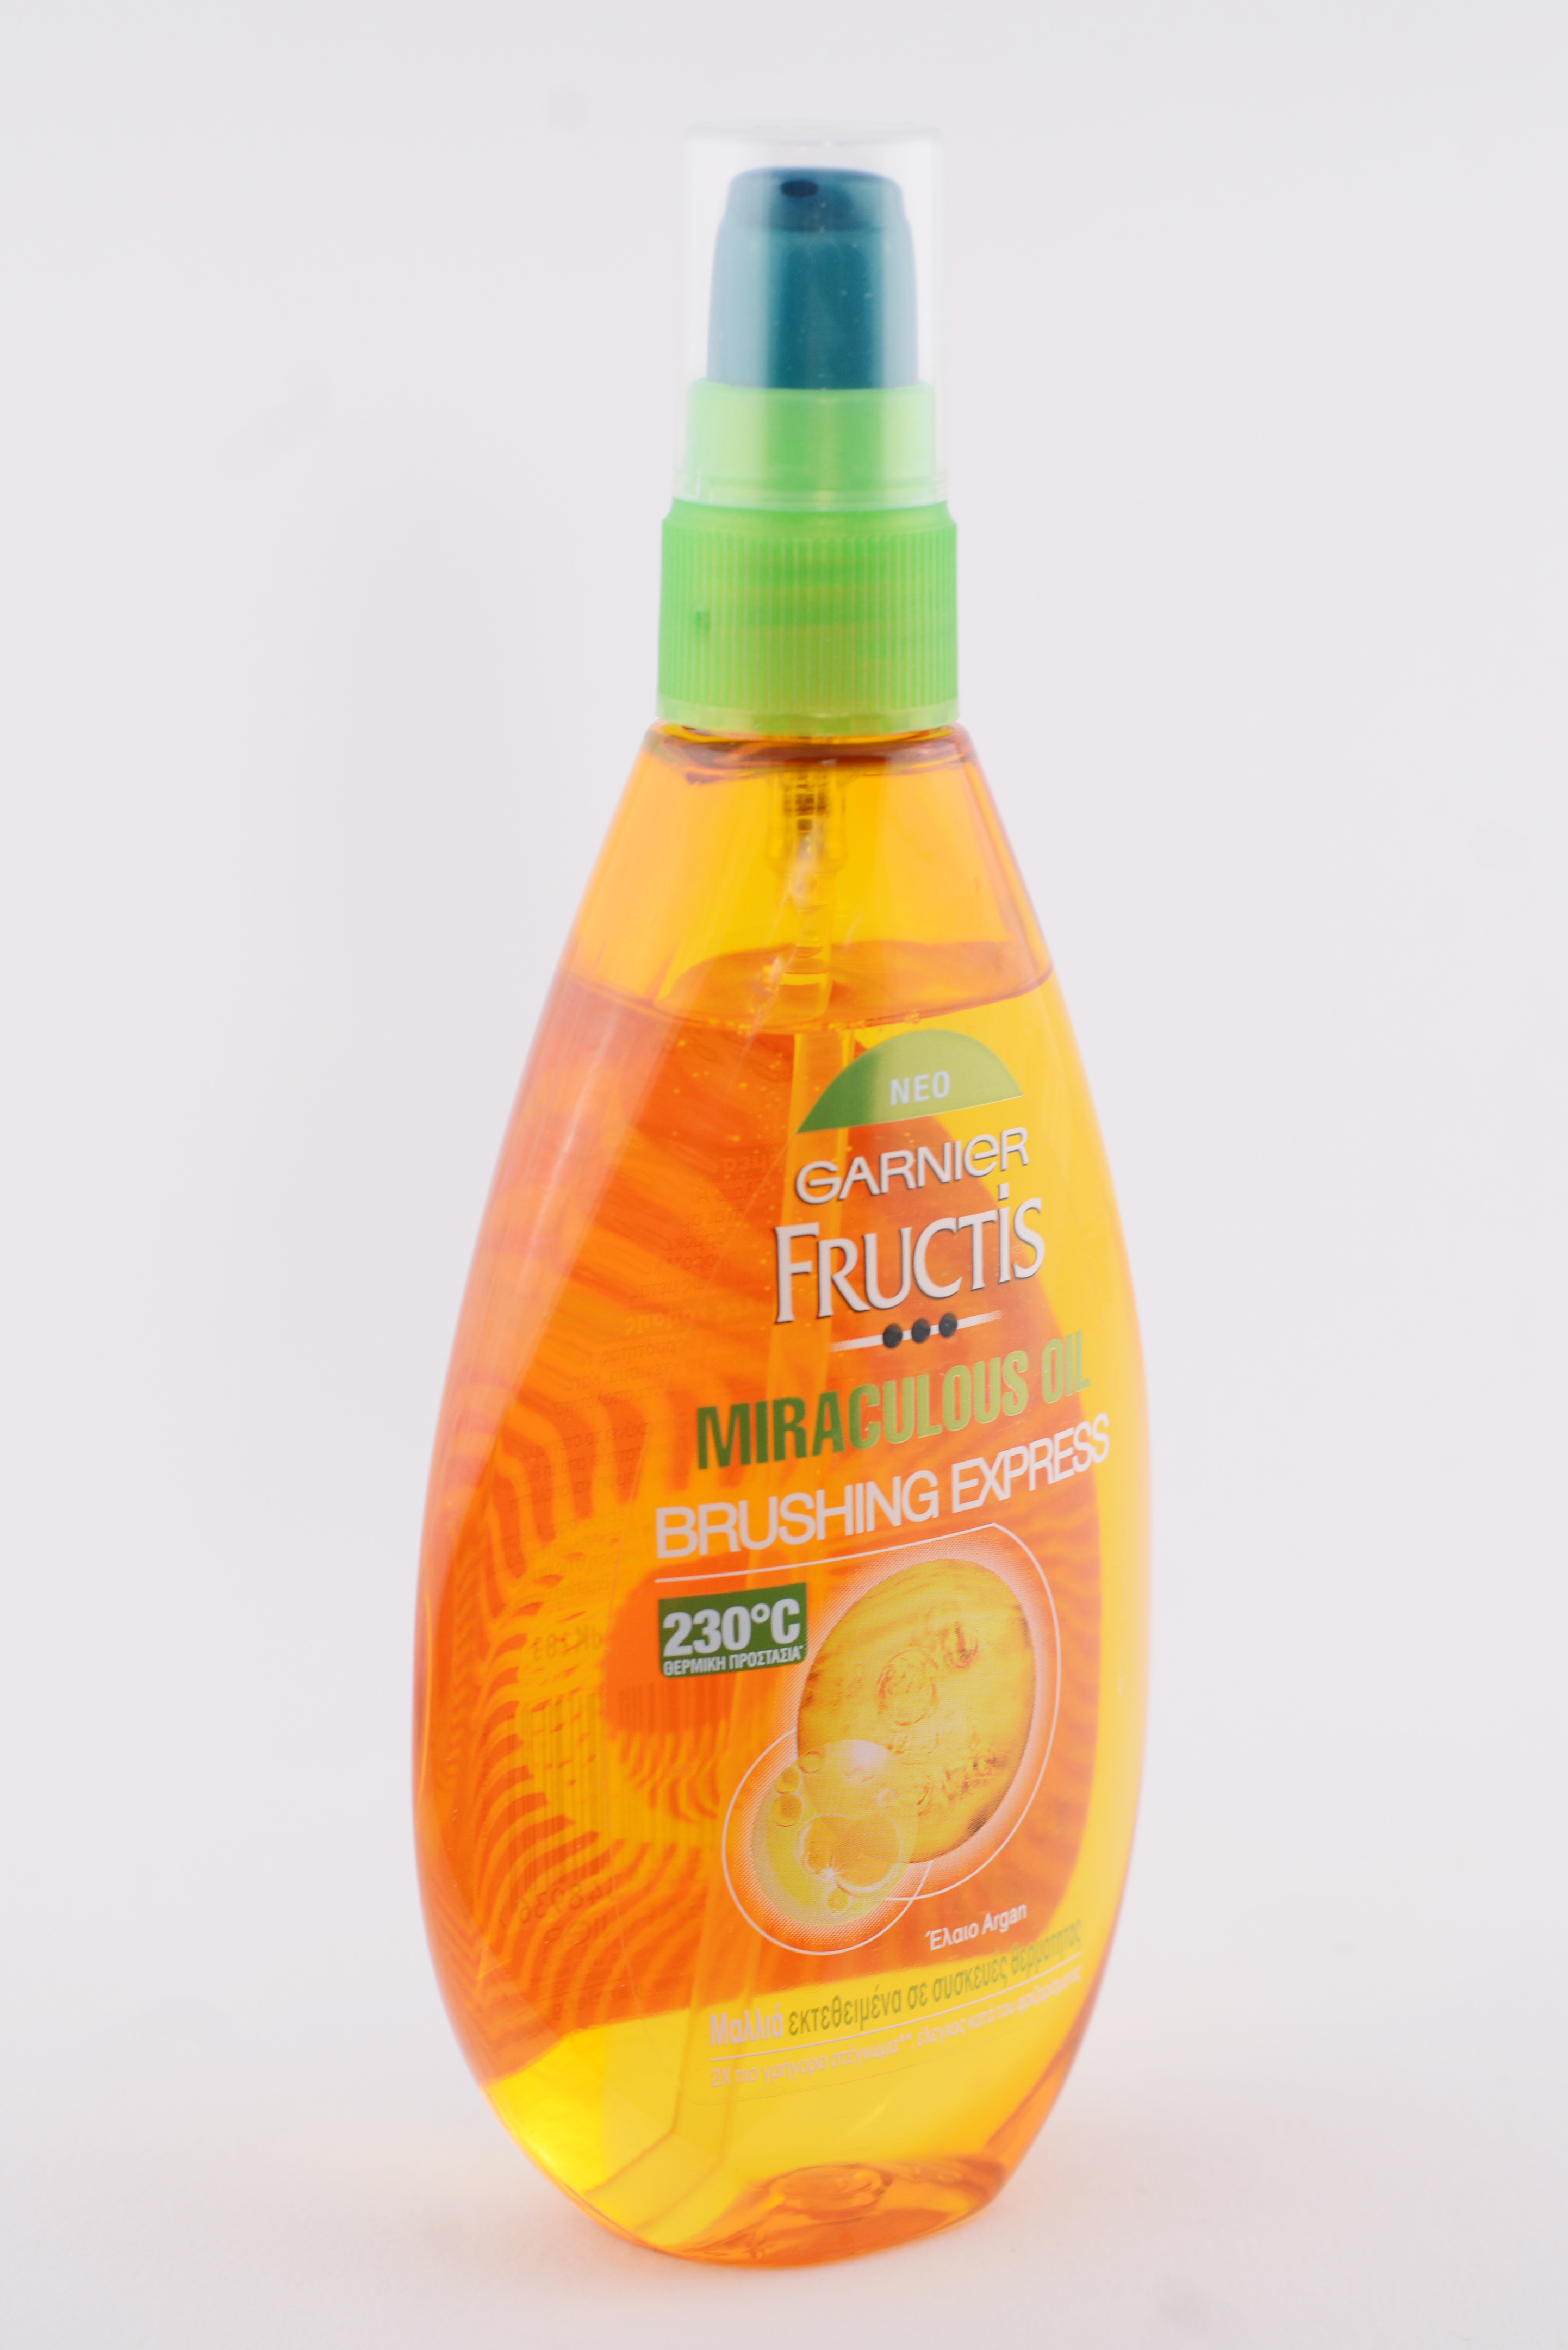 FRUCTIS BRUSHING EXPRESS OIL_2